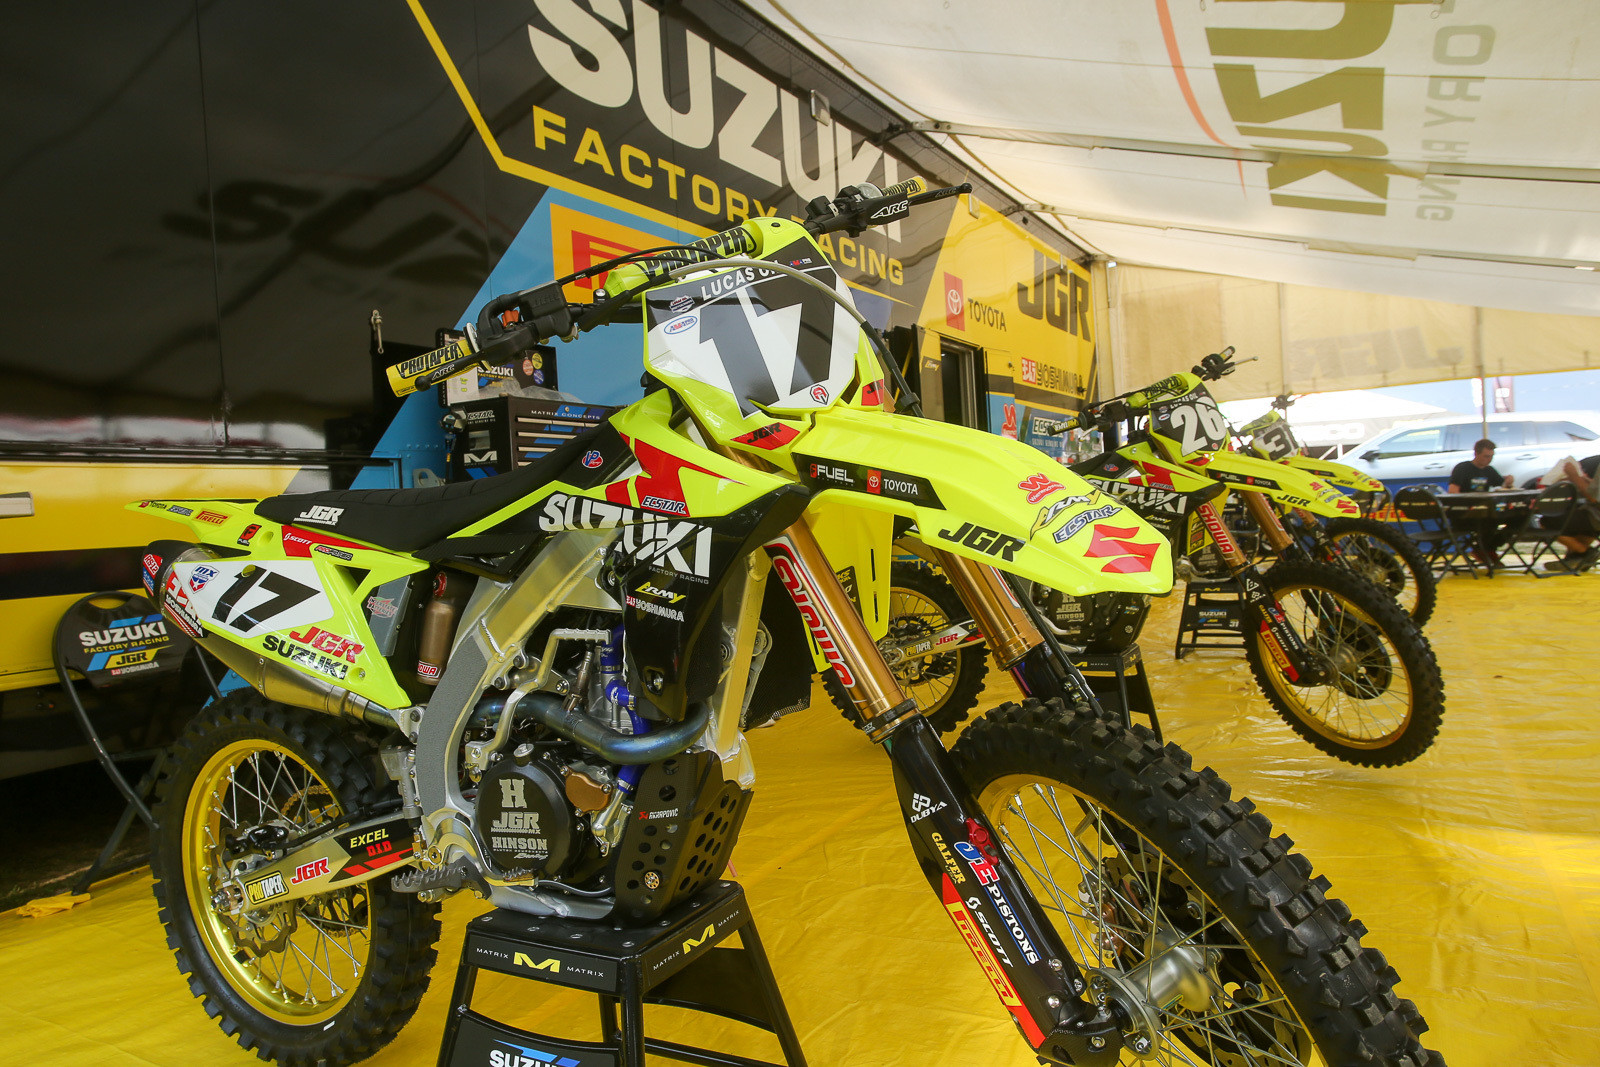 JGRMX/Yoshimura/Suzuki Factory Racing is rocking flo plastics for the weekend. What do you think?